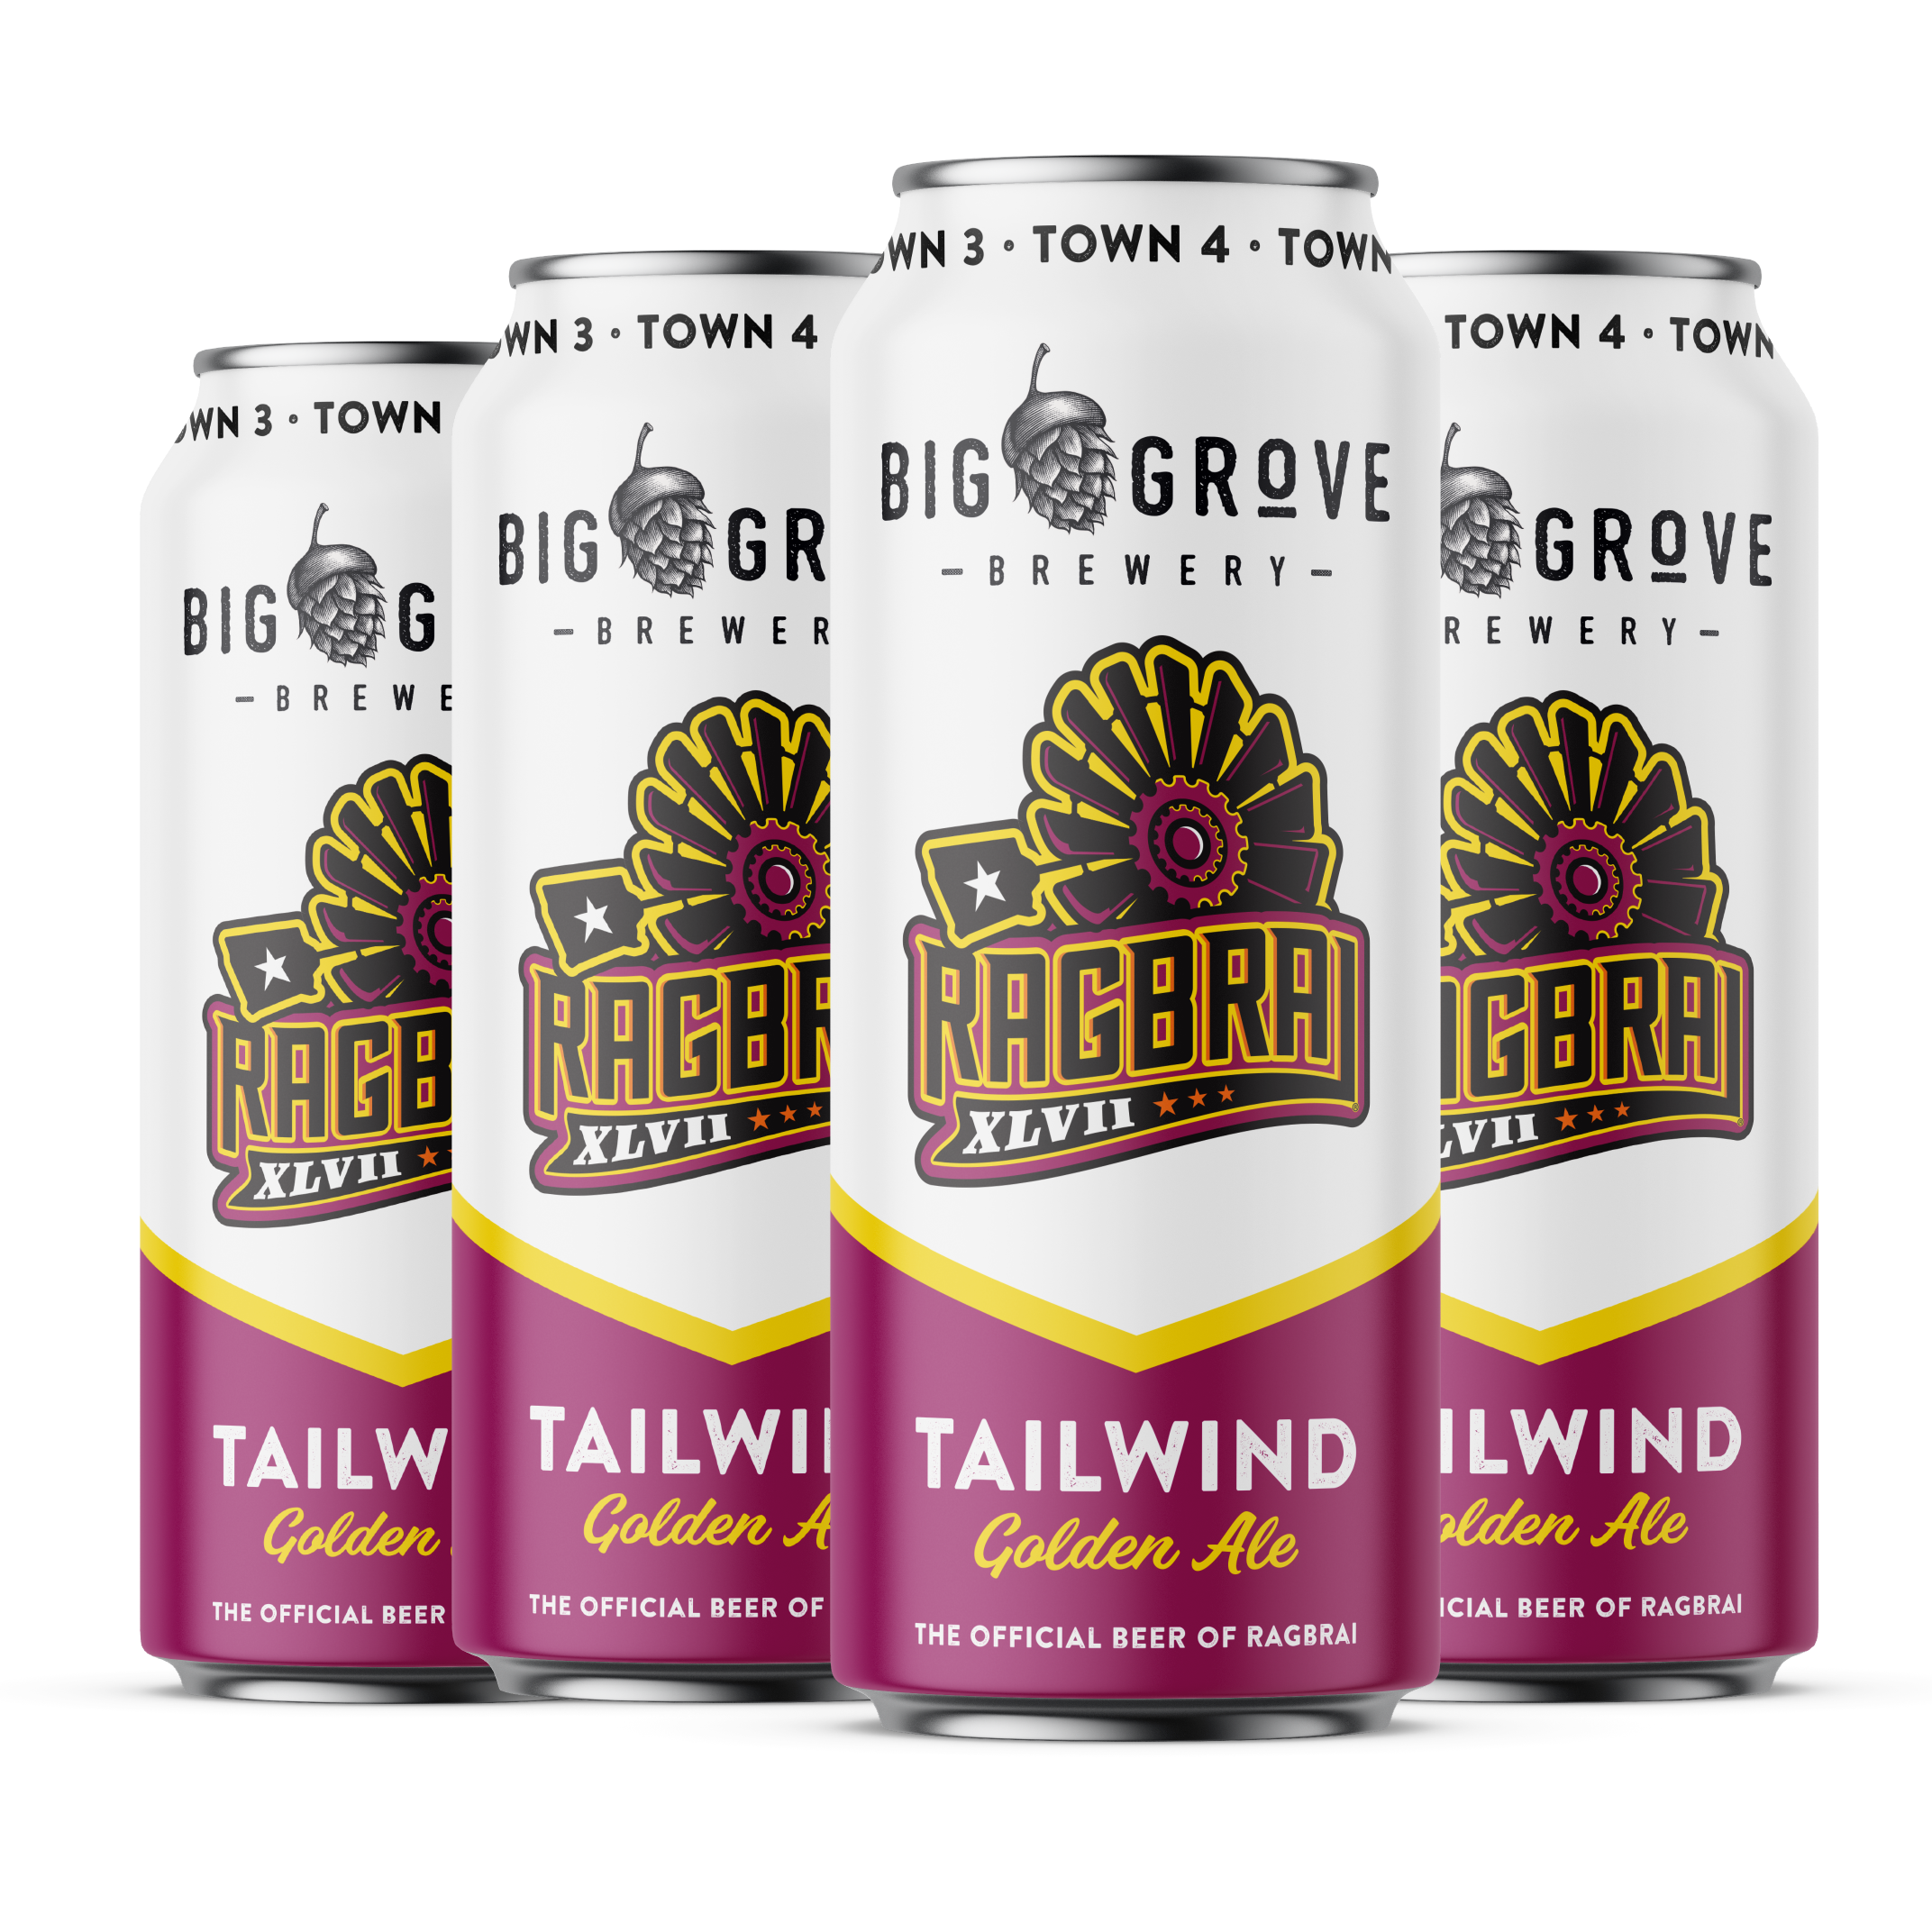 RAGBRAI has a new official beer and it's from a local brewery